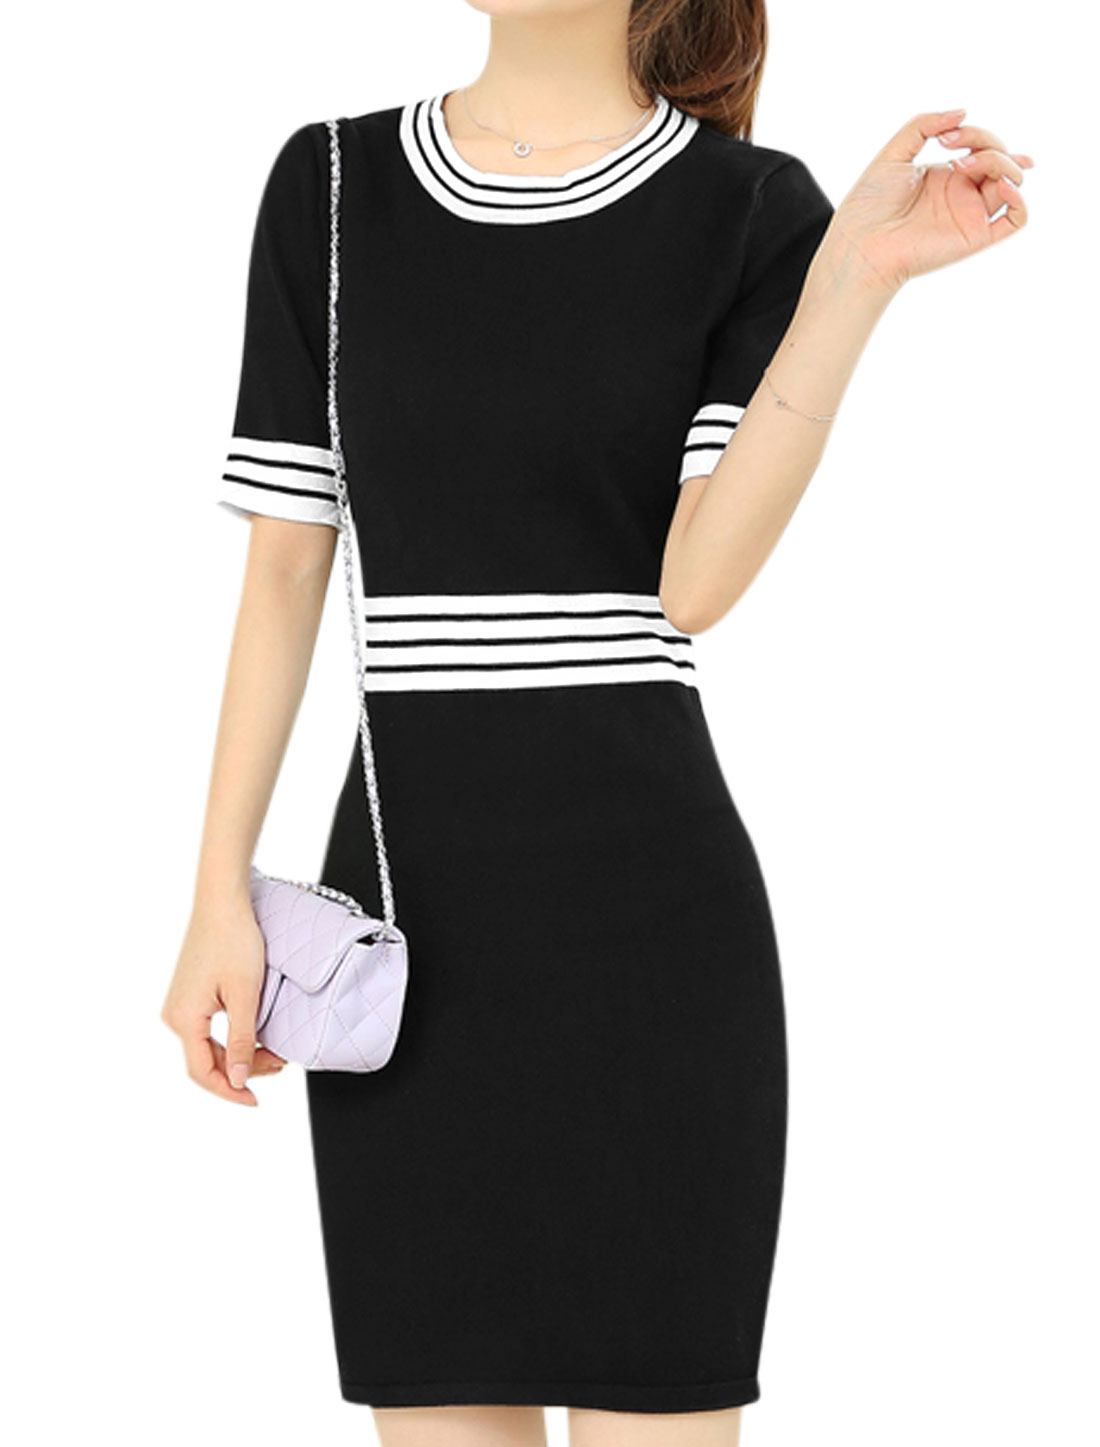 Ladies Stretchy Pullover Stripes Detail Short Sleeve Knit Sheath Dress Black S